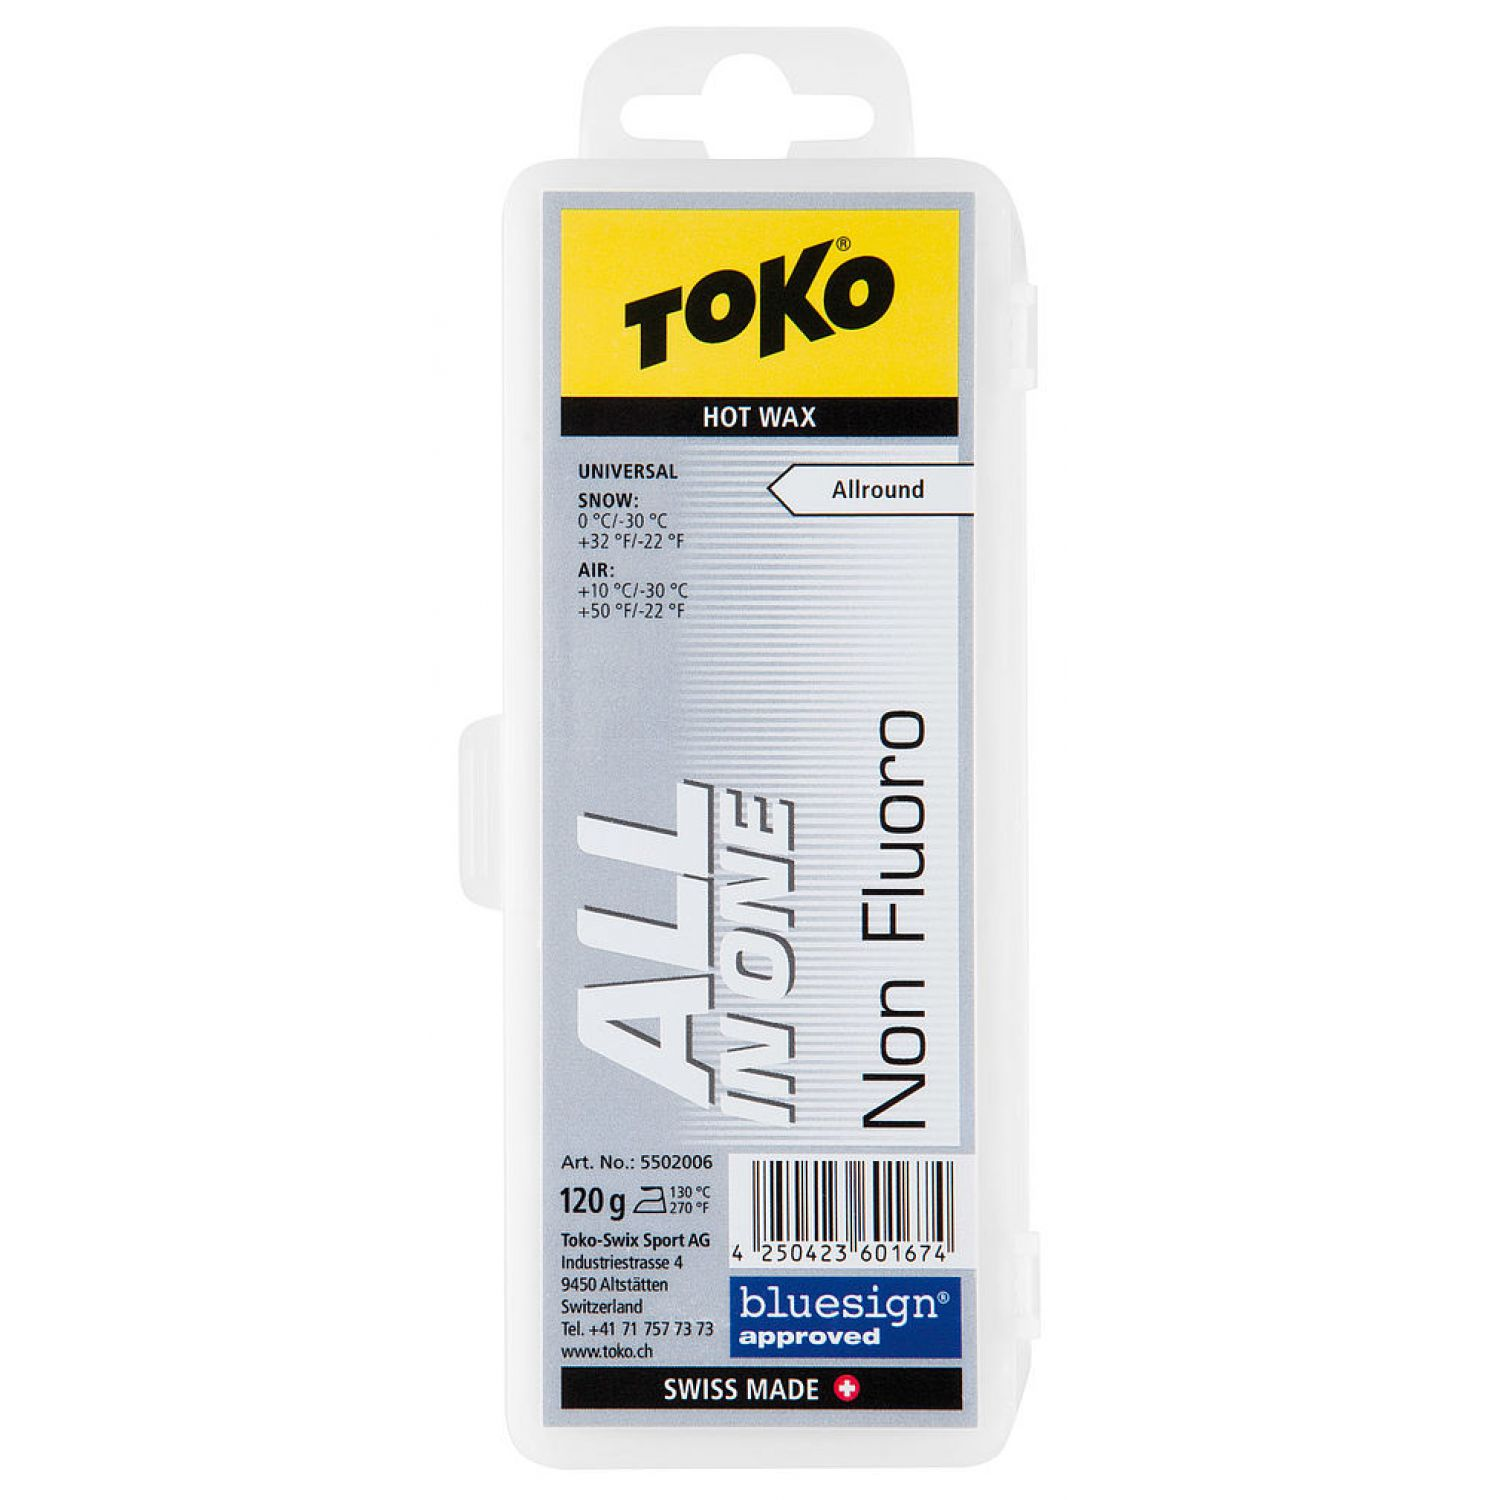 Toko All-in-one Hot Wax 120g | Skiwax